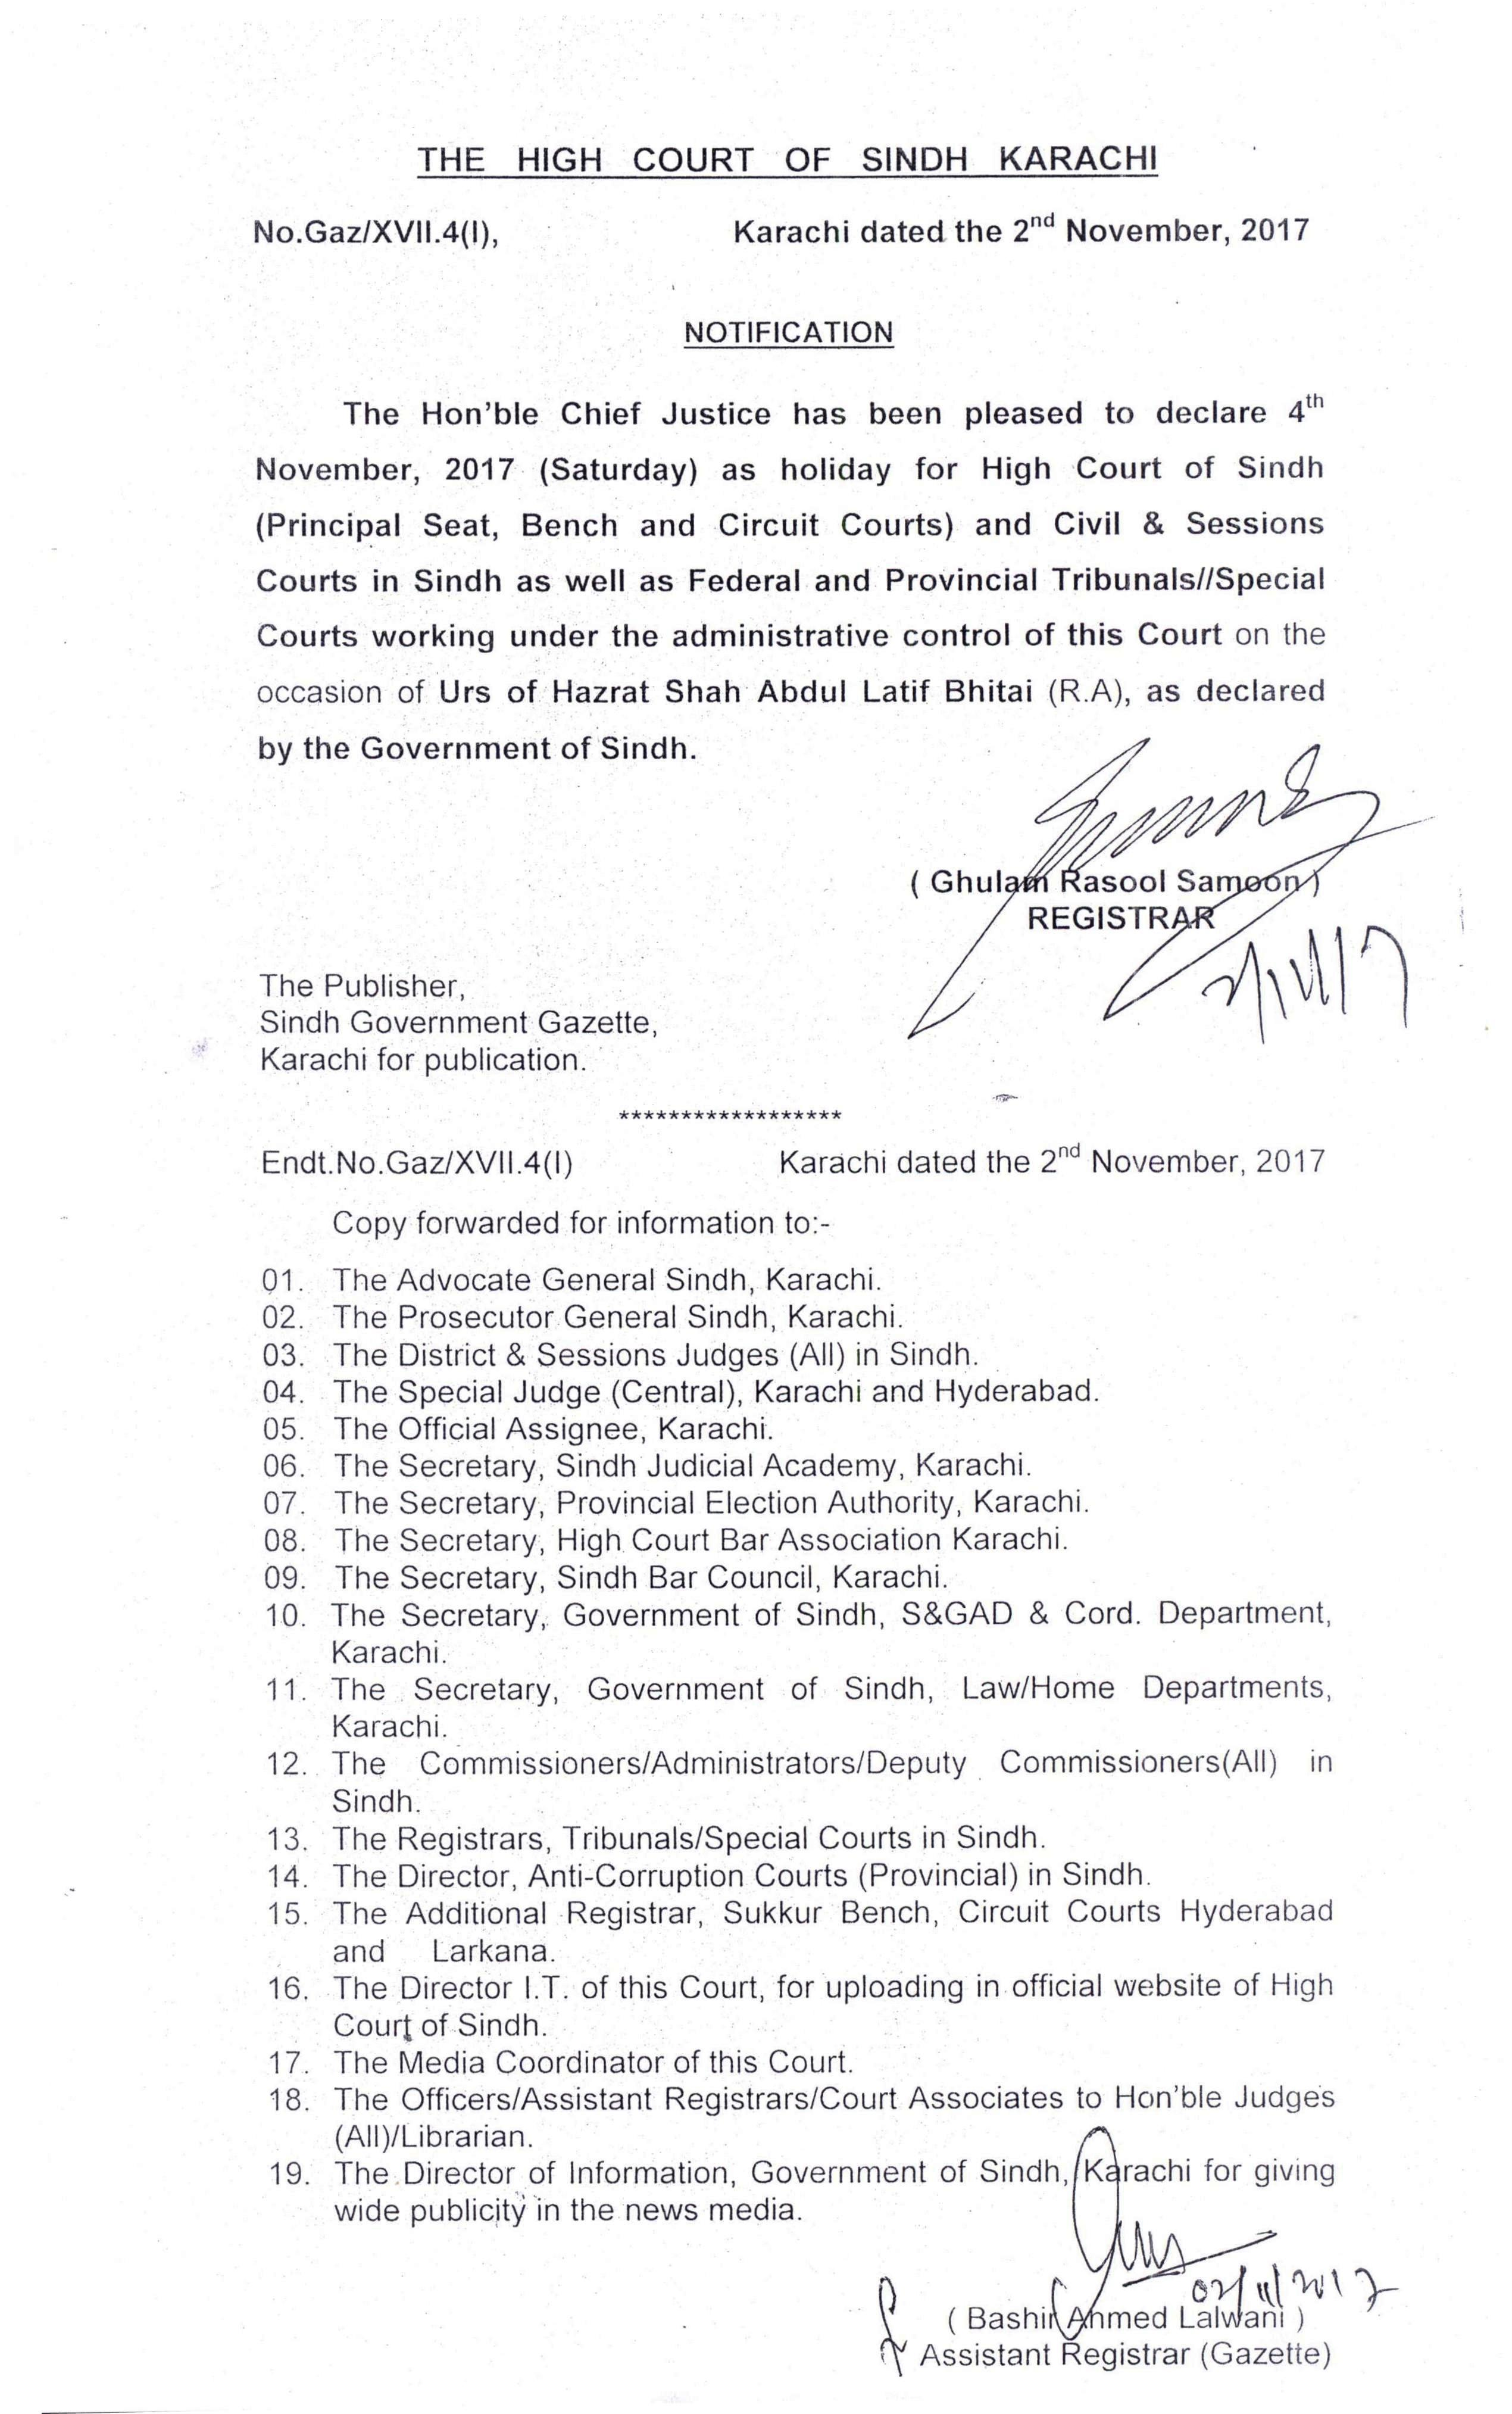 Welcome To High Court Of Sindh Circuit Kamran Ahmed Uk Gaz Xvii4i Regarding Declaration 4th November 2017 Saturday As Holiday For Principal Seat Bench And Courts Civil